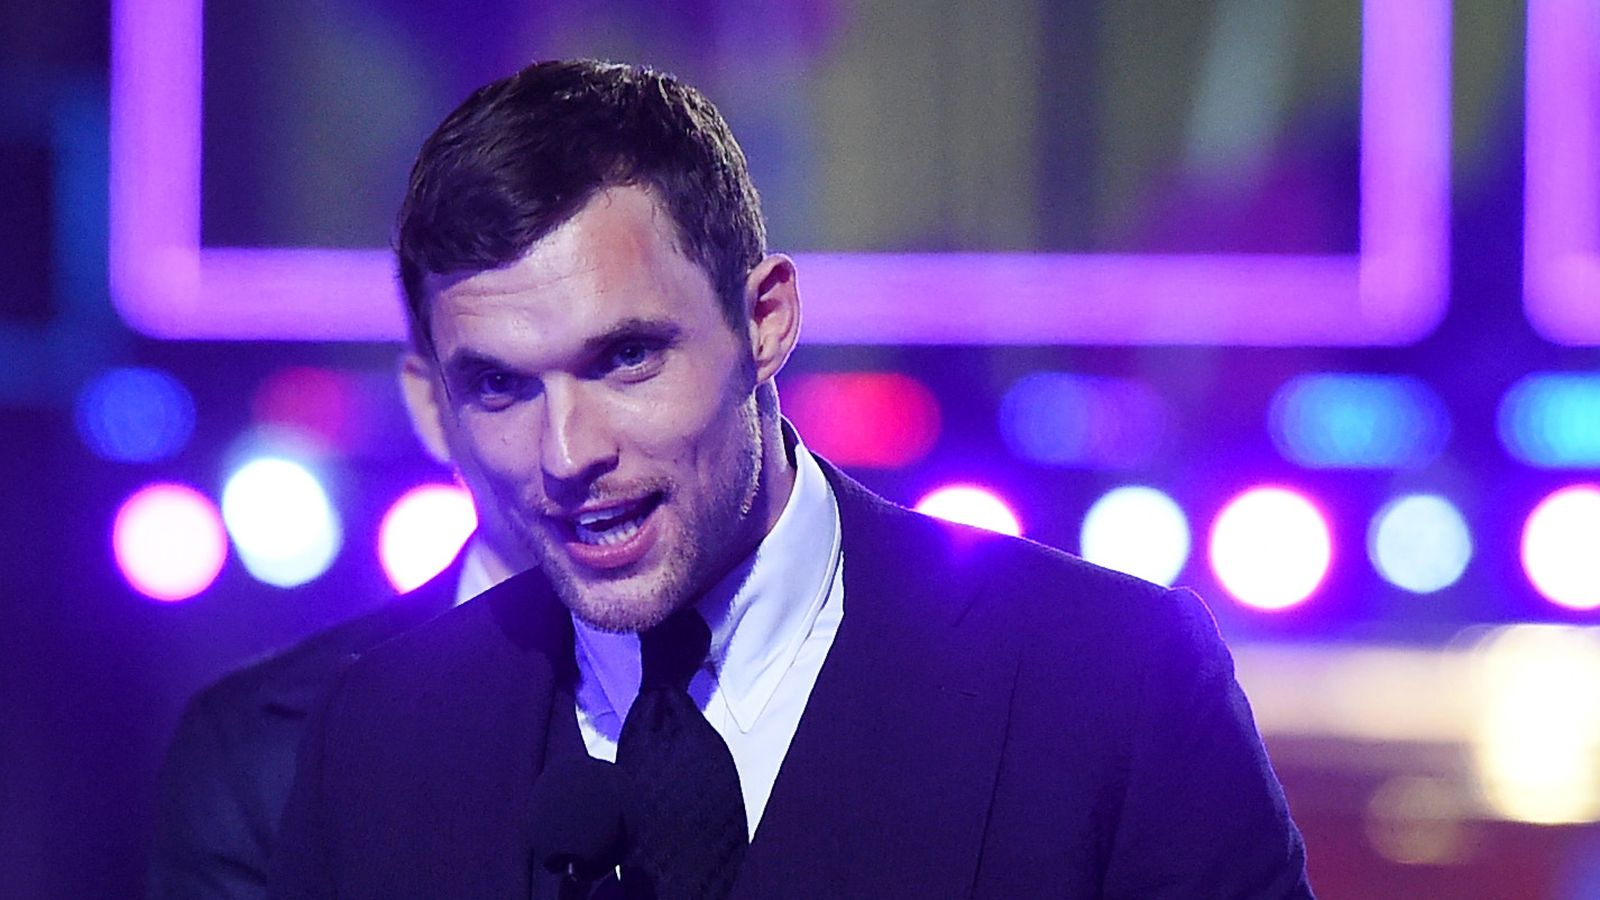 Hellboy actor Ed Skrein steps down from role after whitewashing criticism